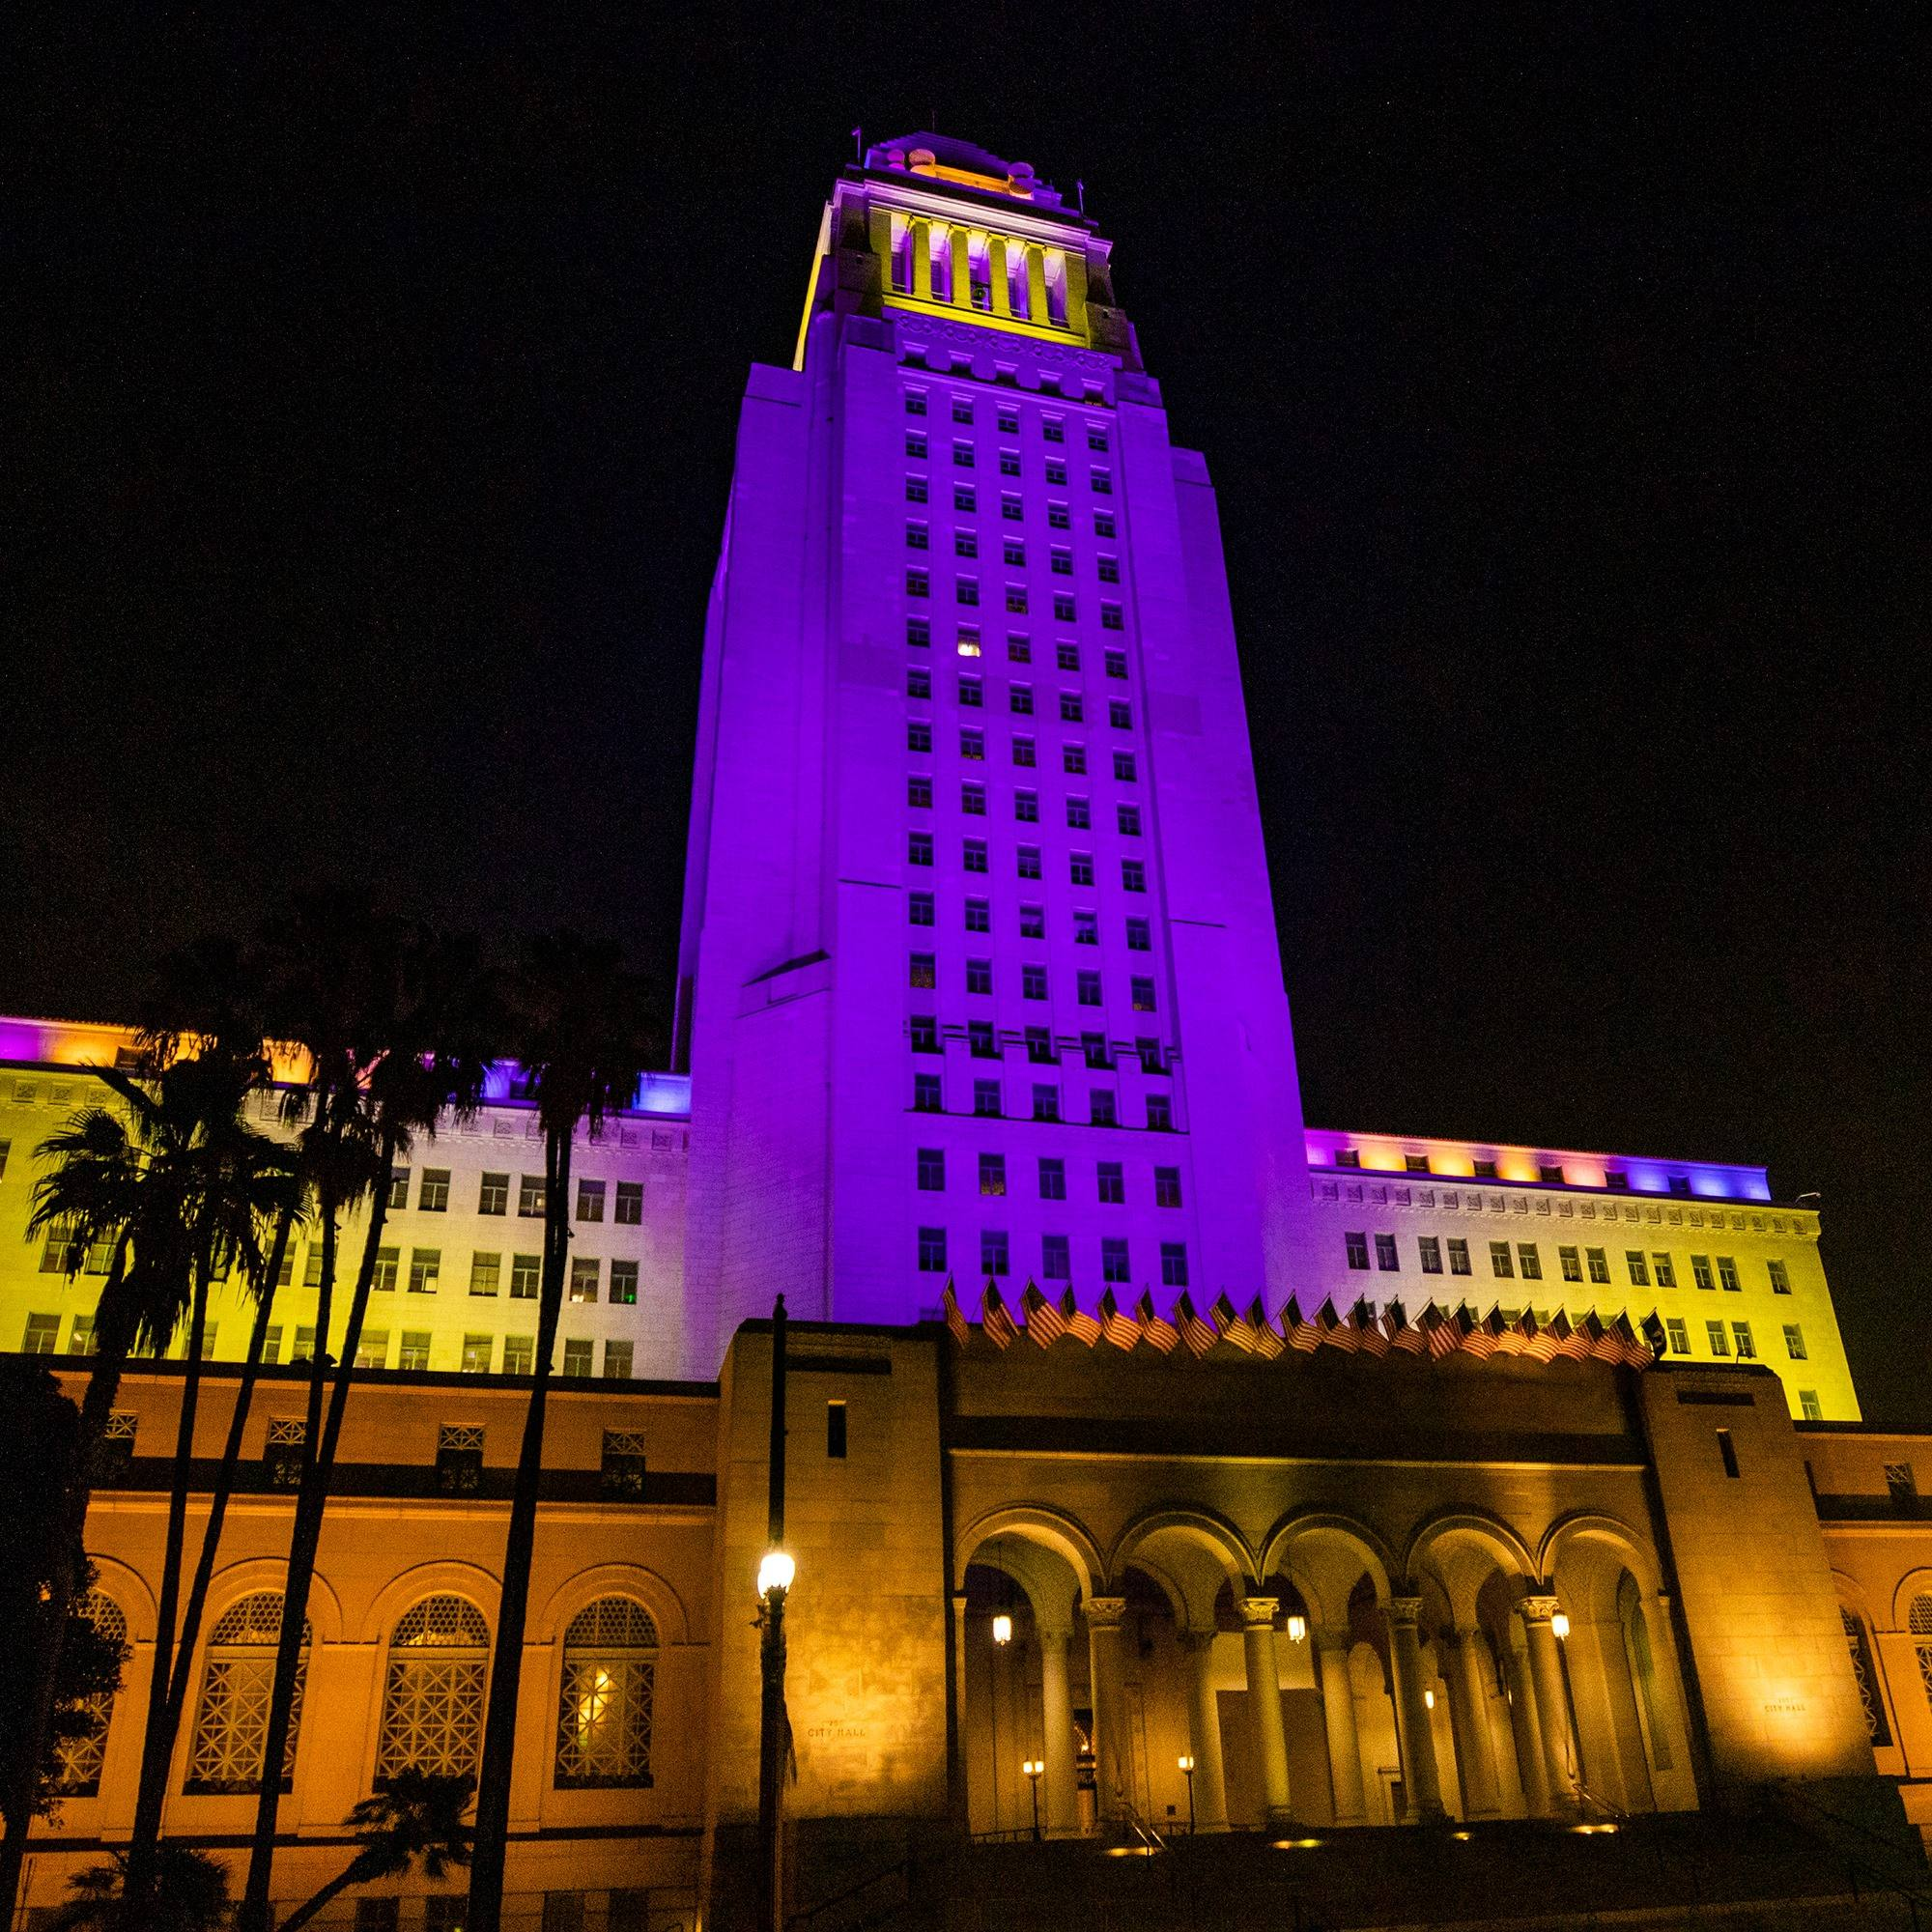 LA City Hall lit up in purple and gold in honor of Kobe Bryant